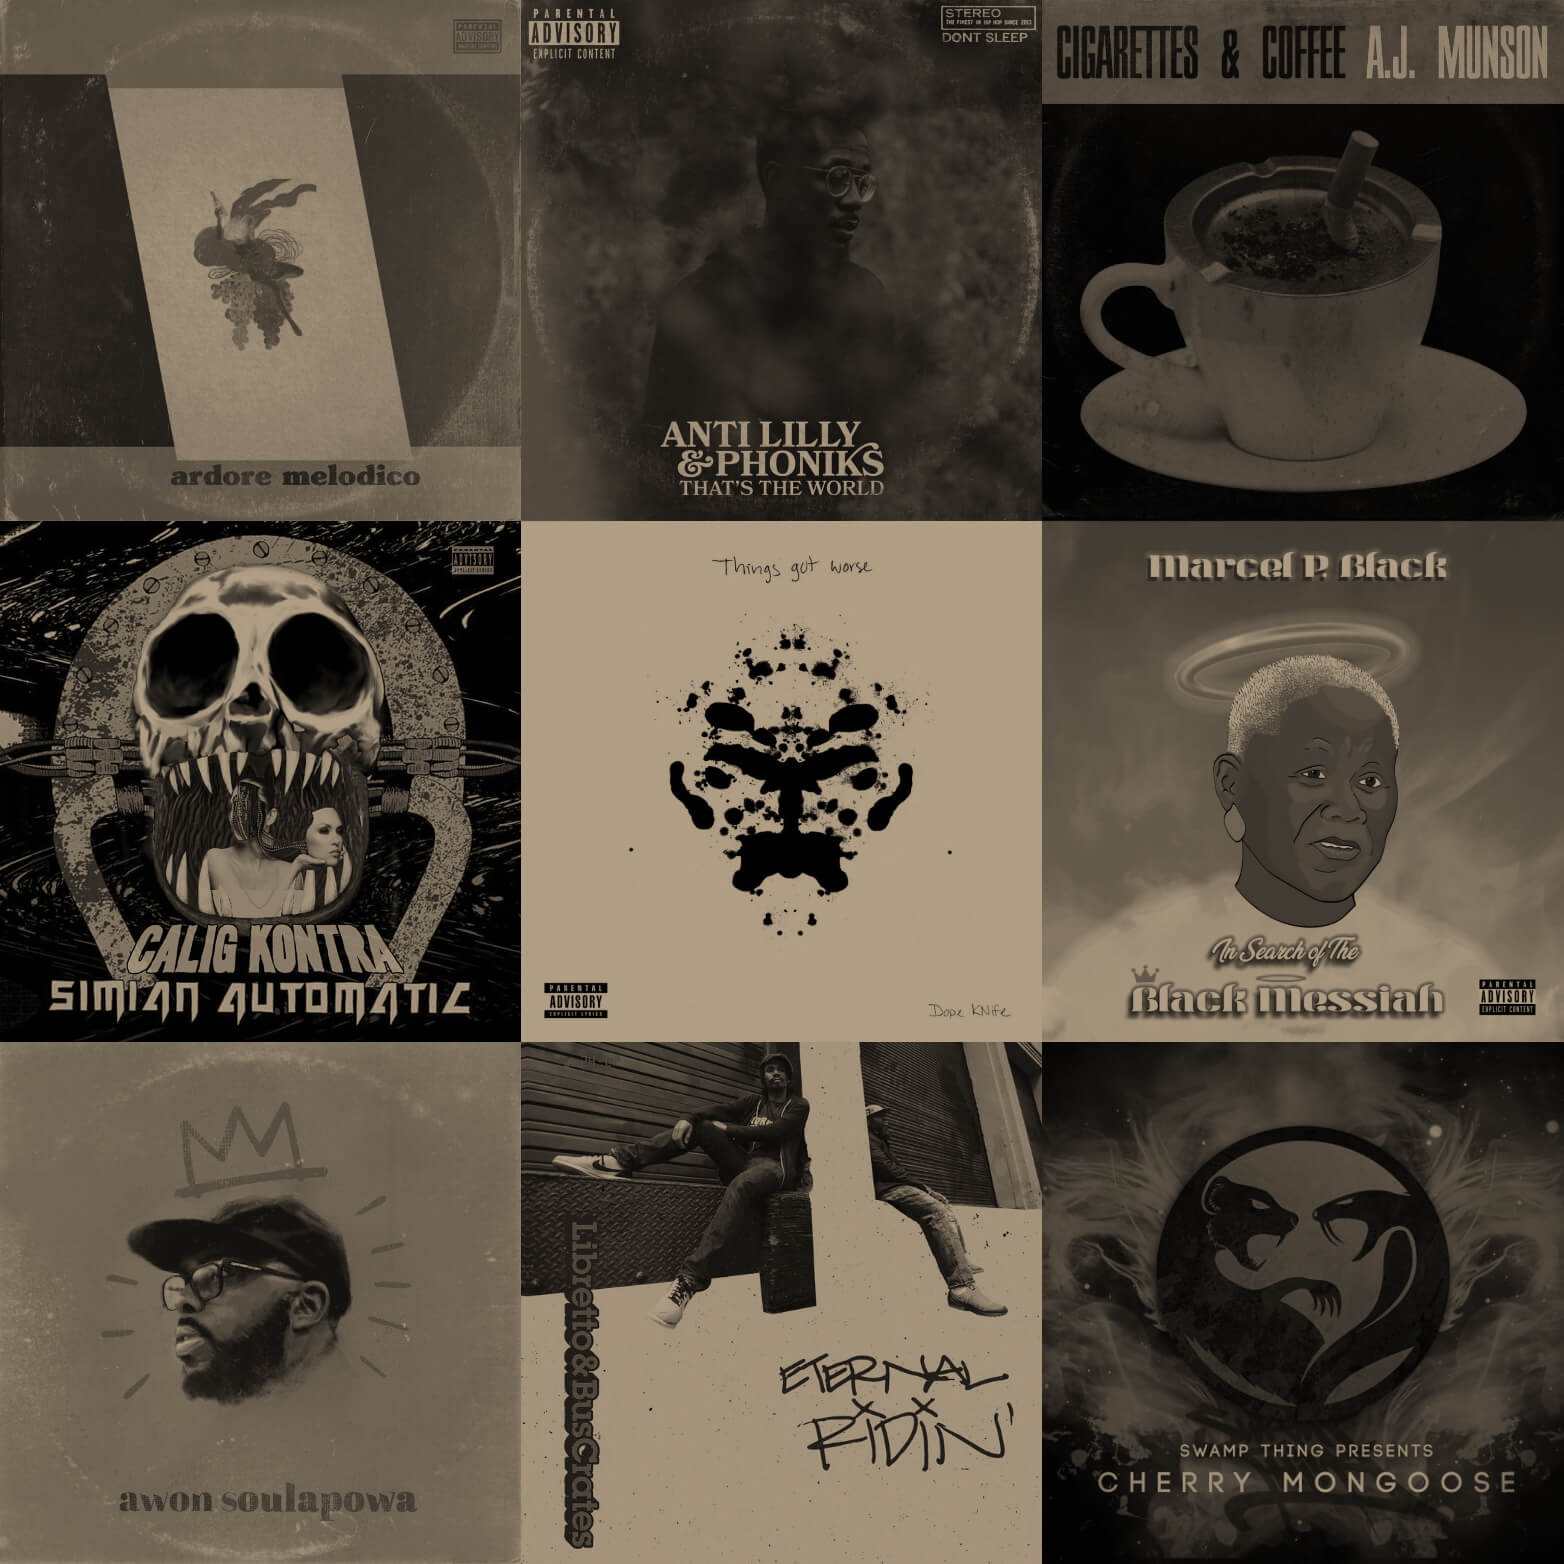 9 Great Hip Hop Albums Released In 2019 You Haven't Listened To, But Should - Hip Hop Golden Age